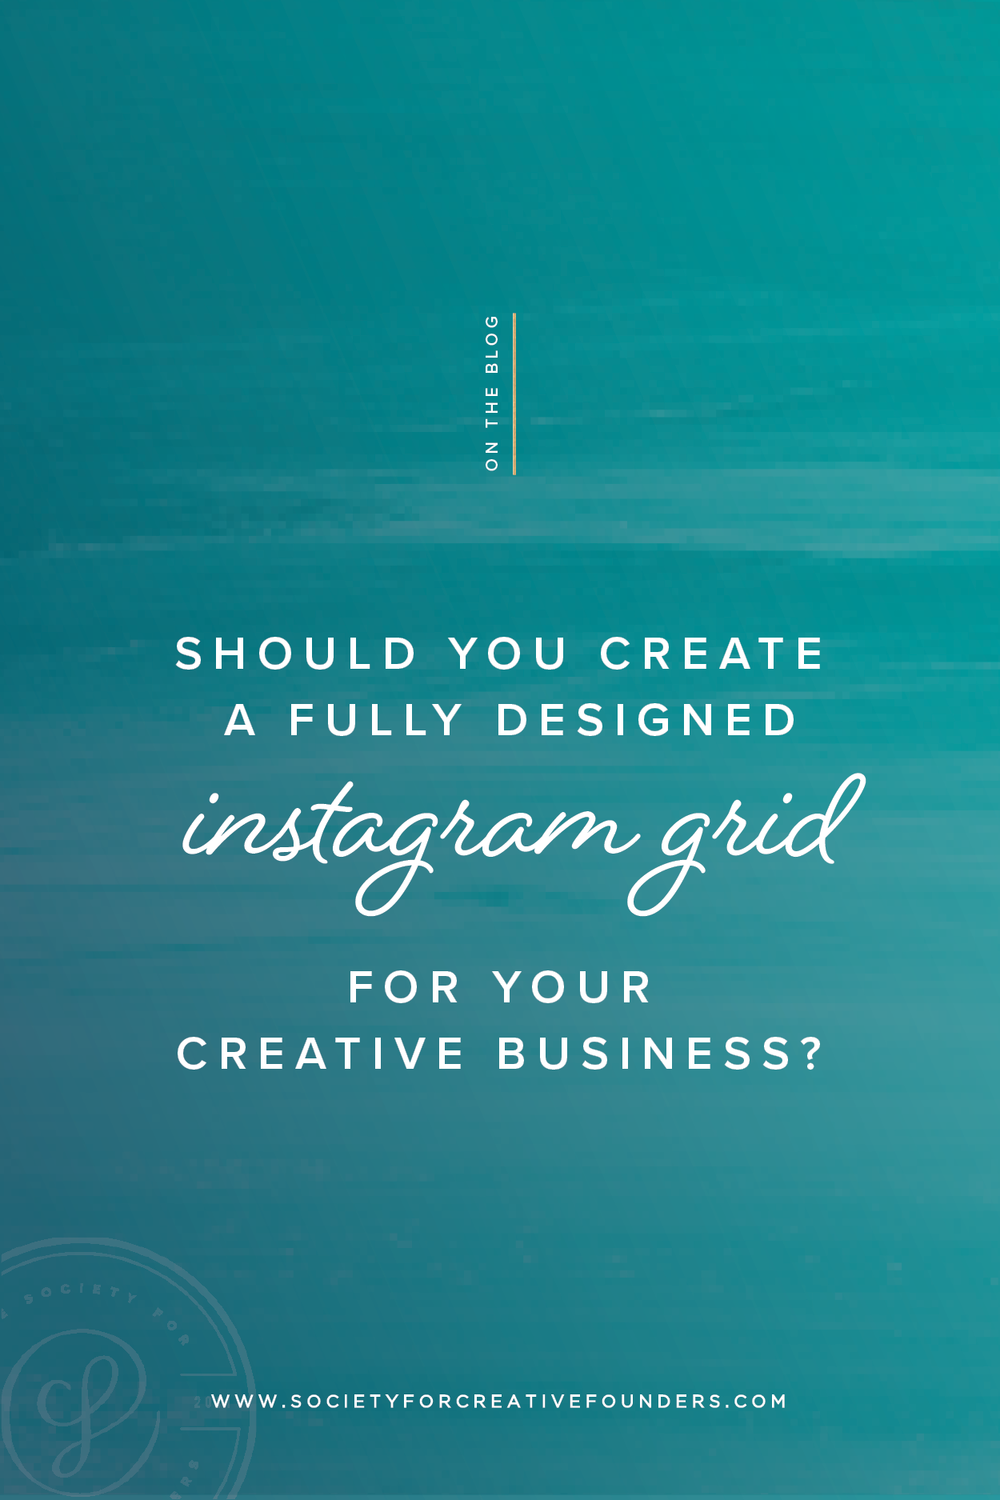 Should you Create an Instagram Grid for your creative business? Our experience shared.